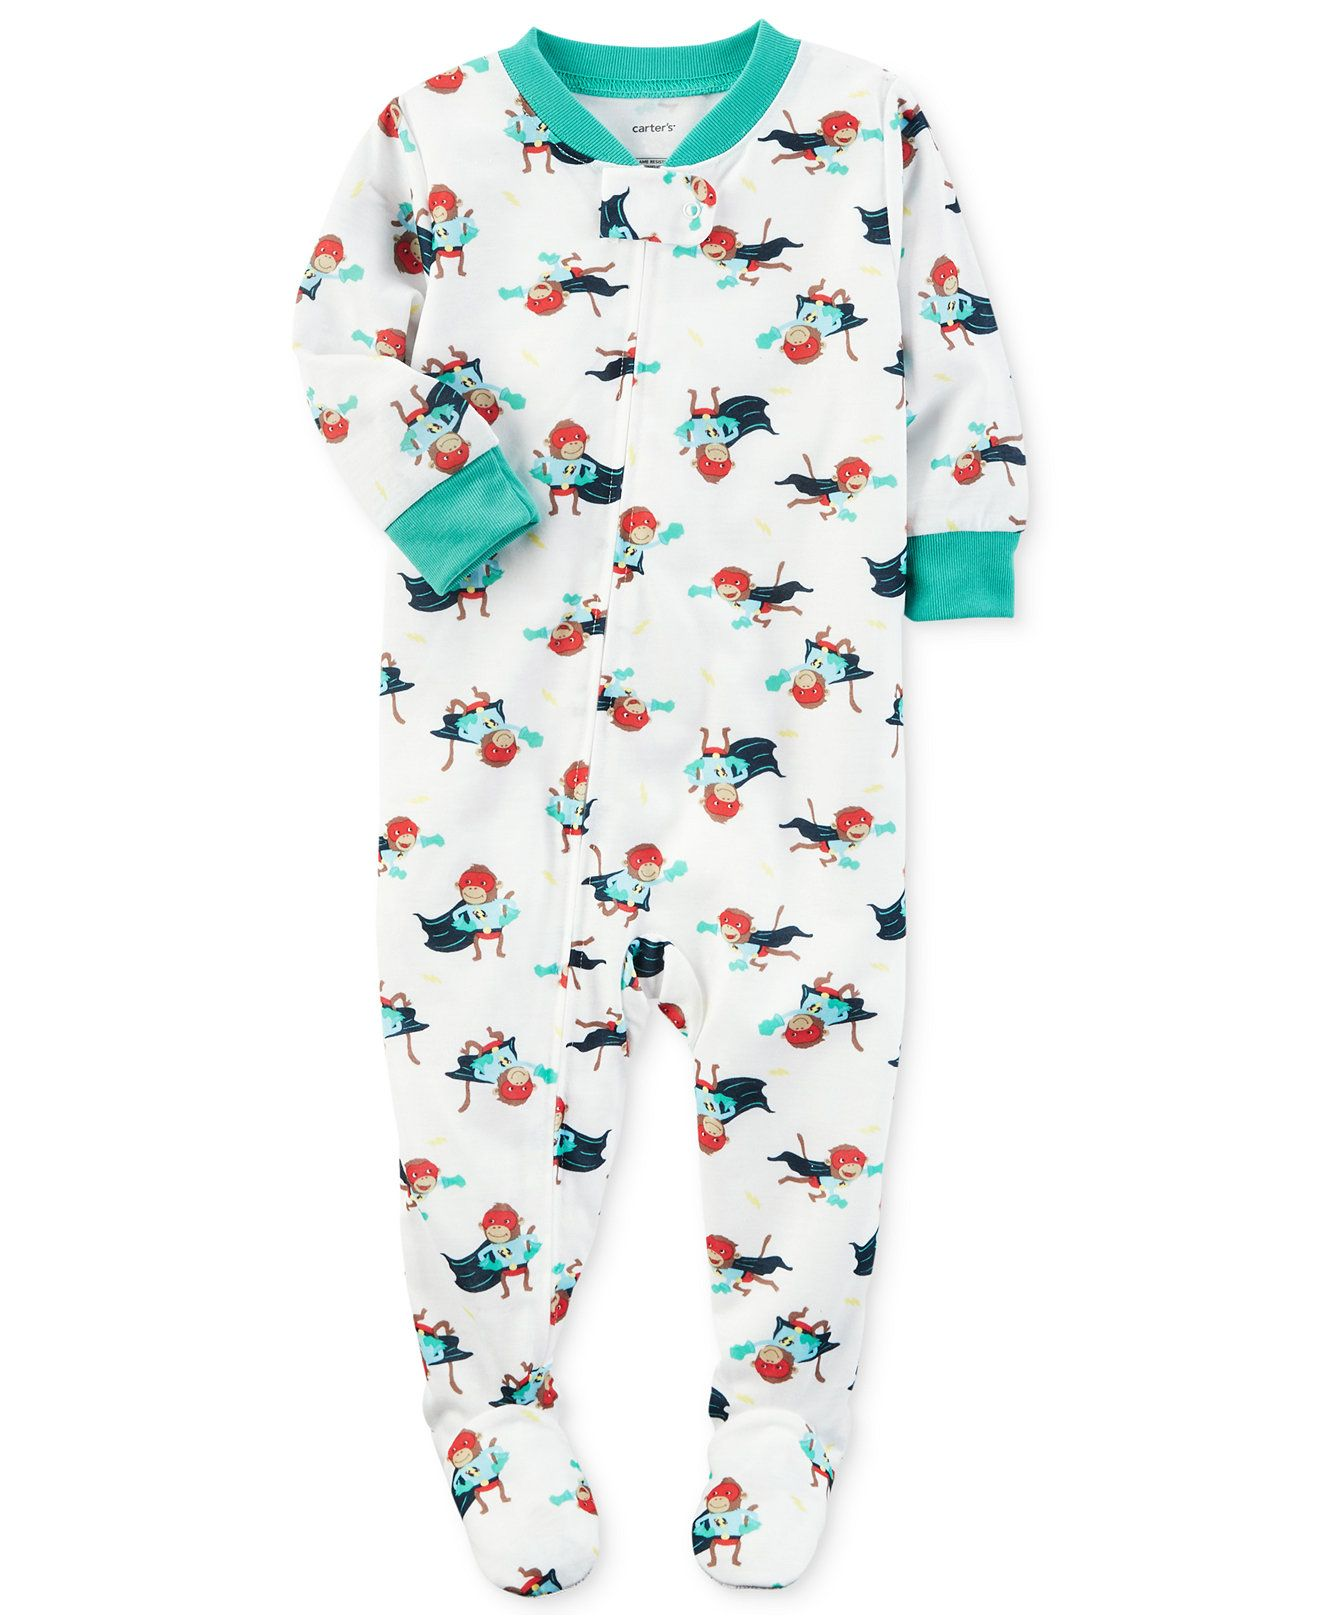 671f51801101 Carter s 1-Pc. Super Monkey-Print Footed Pajamas